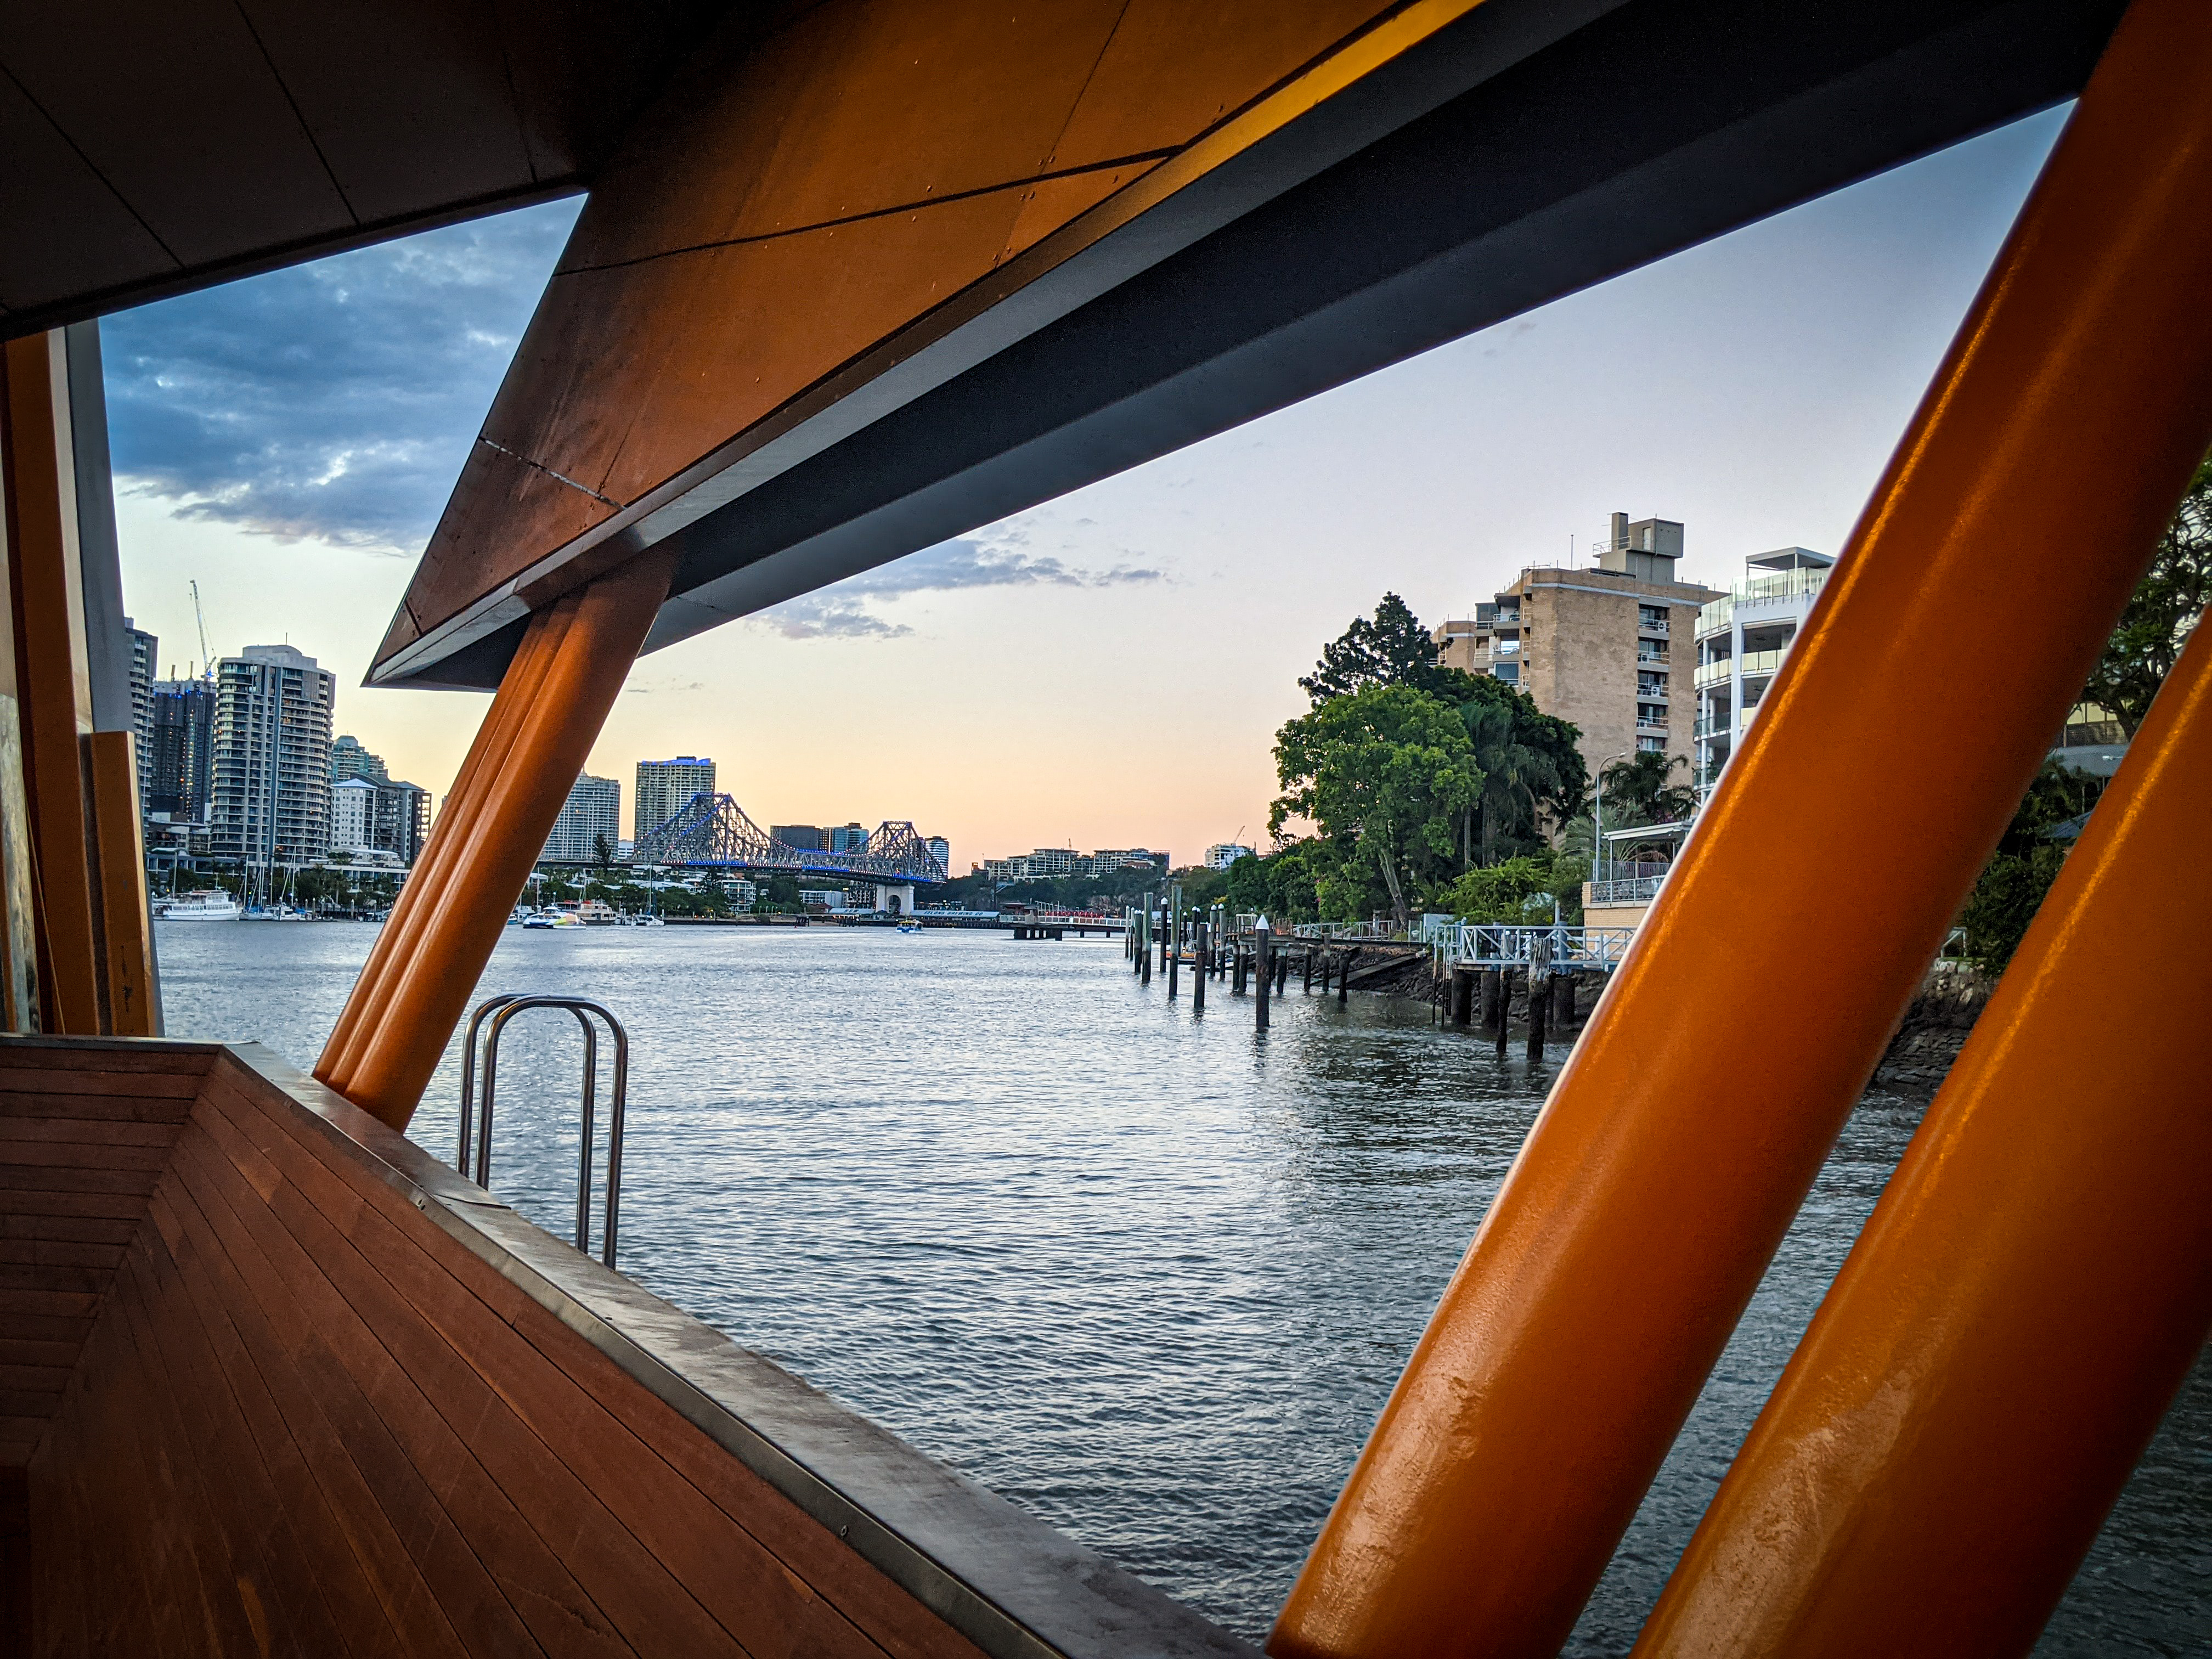 Looking back to the Storey Bridge from the Sydney Street Ferry Stop